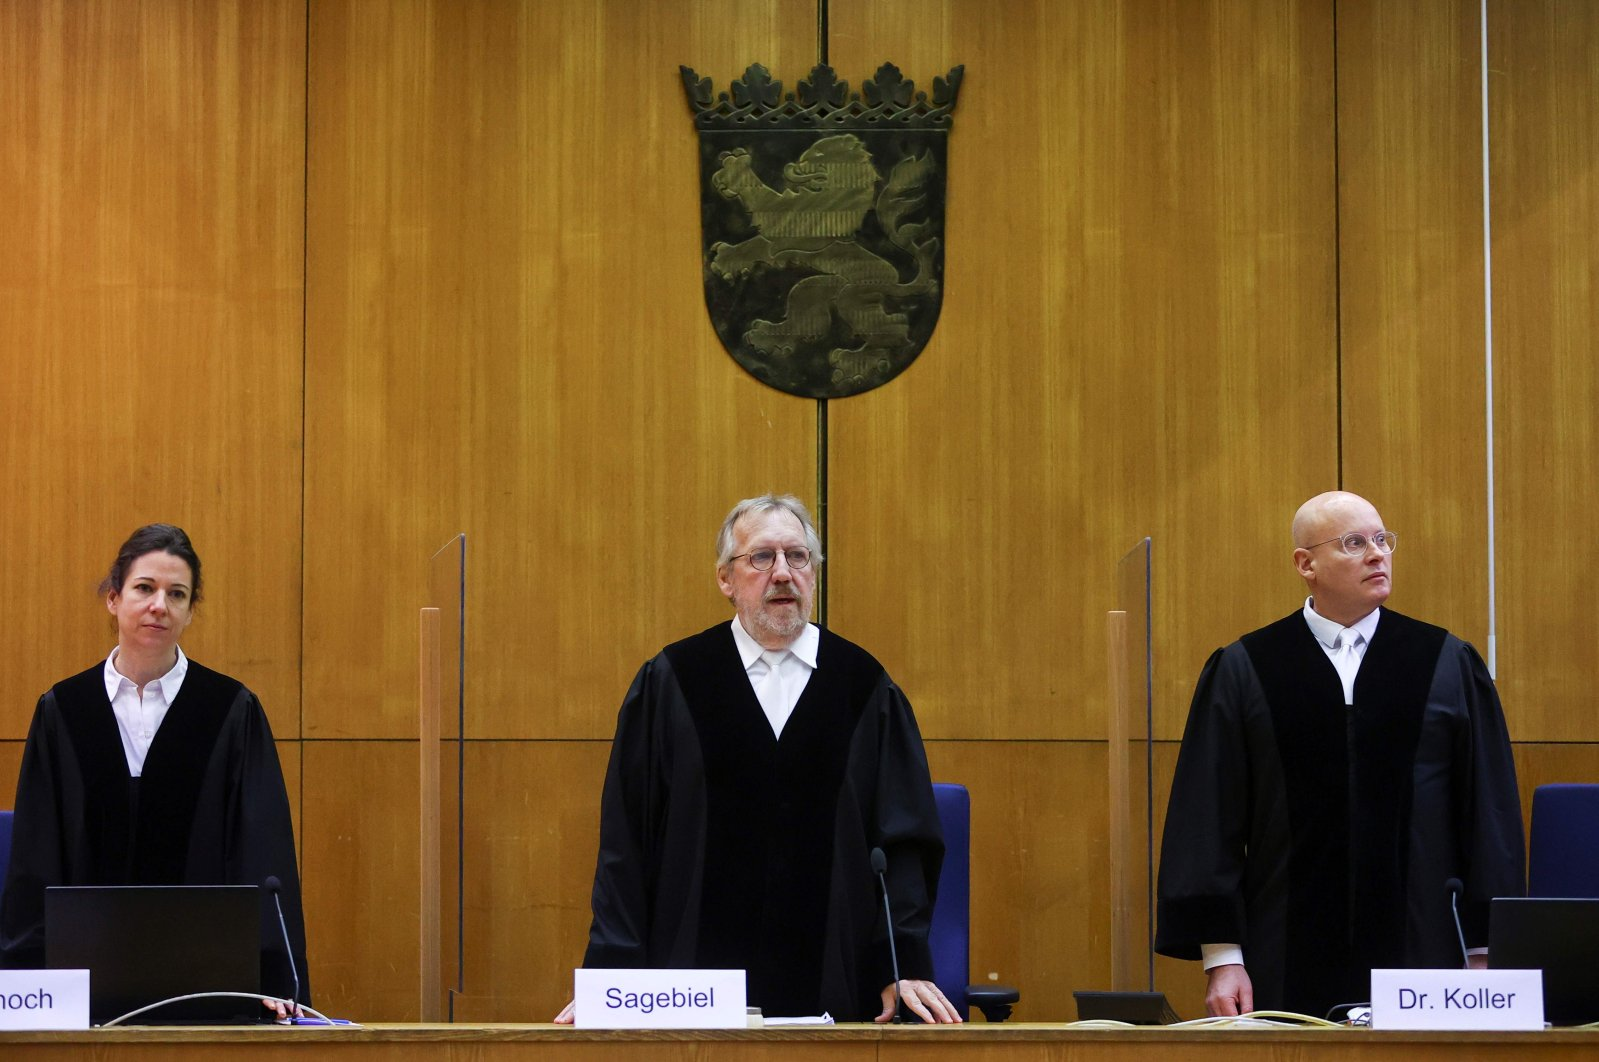 Presiding Judge Thomas Sagebiel (C) stands between judges Miriam Adlhoch (L) and Christoph Koller (R) in the courtroom prior to the verdict in the case of the murder of Walter Luebcke, at the Higher Regional Court in Frankfurt am Main, western Germany, Jan. 28, 2021. (AFP Photo)